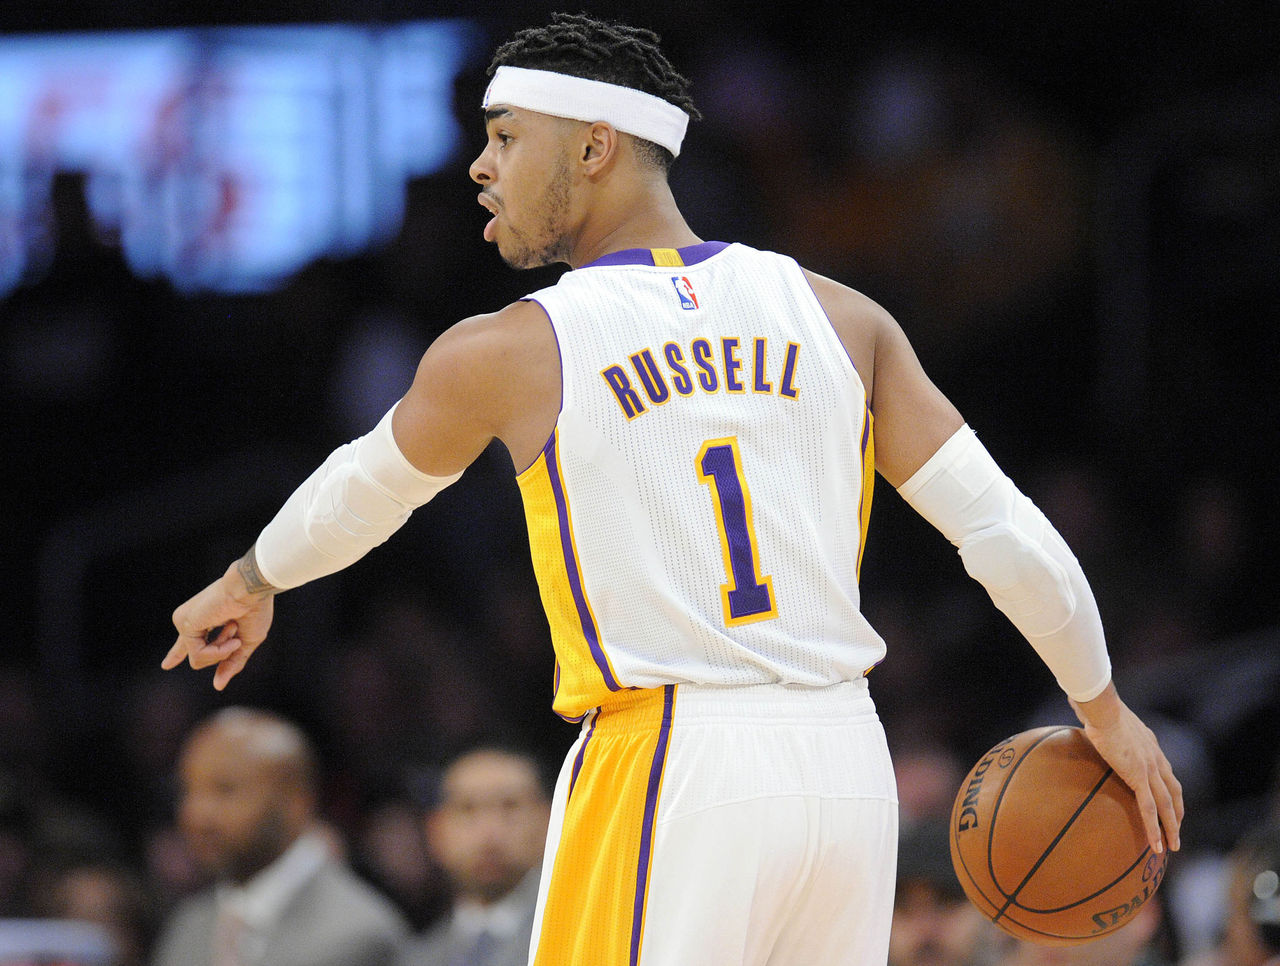 Cropped_2017-01-16t035324z_2123699481_nocid_rtrmadp_3_nba-detroit-pistons-at-los-angeles-lakers